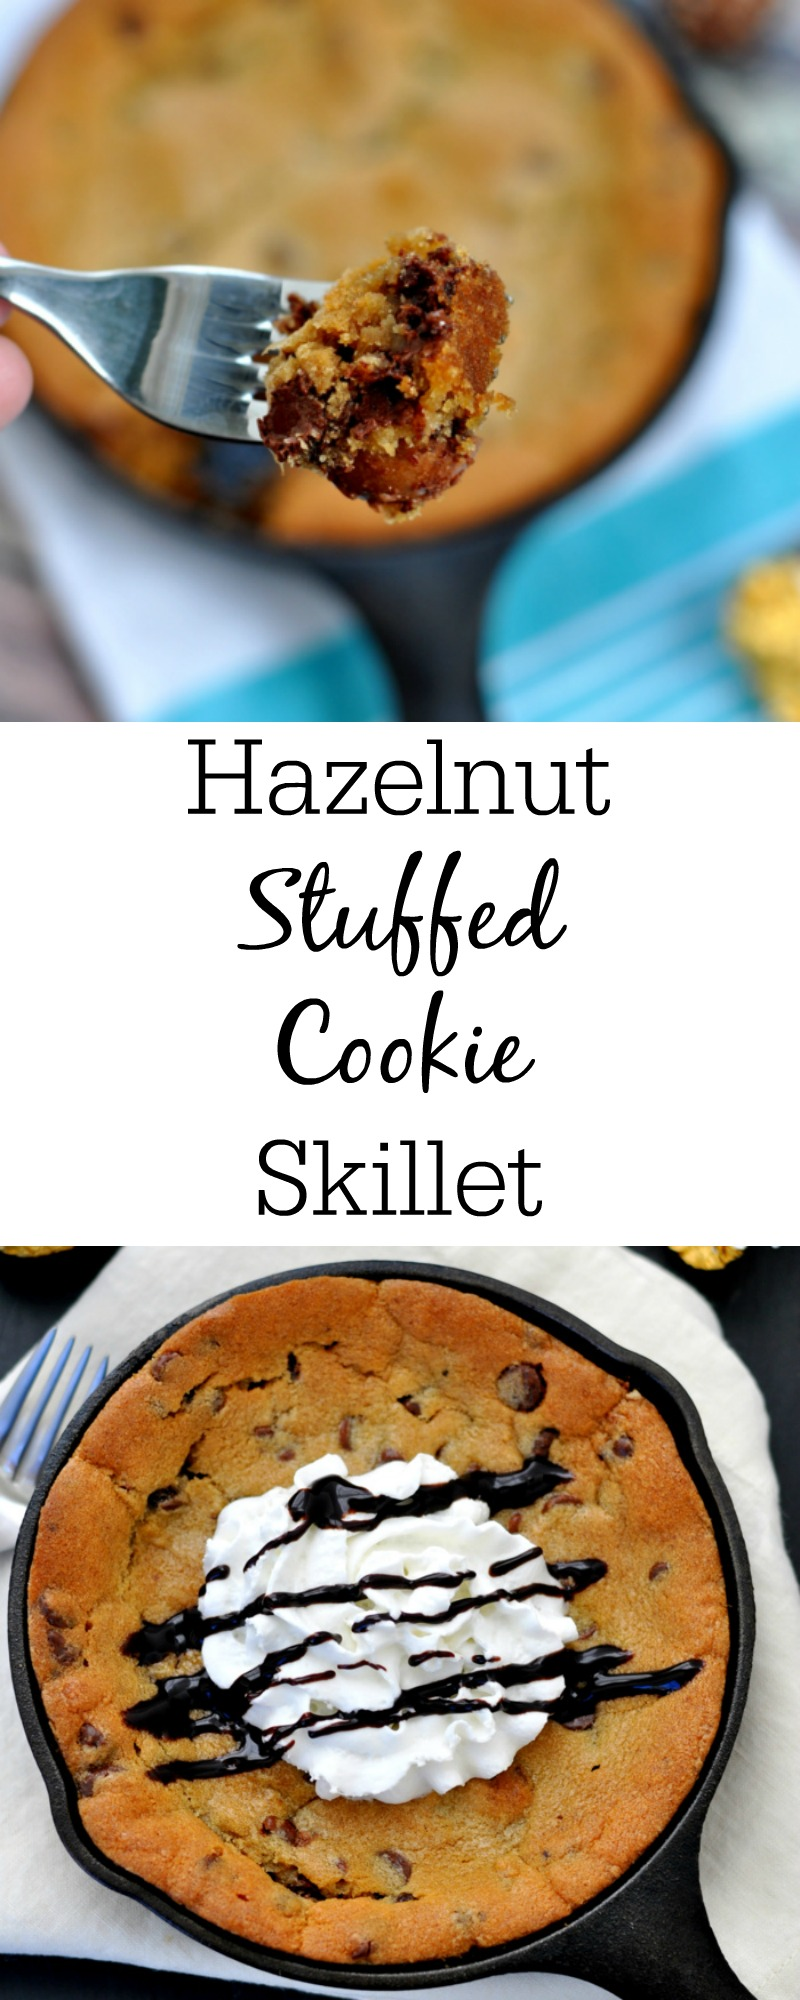 Hazelnut Stuffed Cookie Skillet